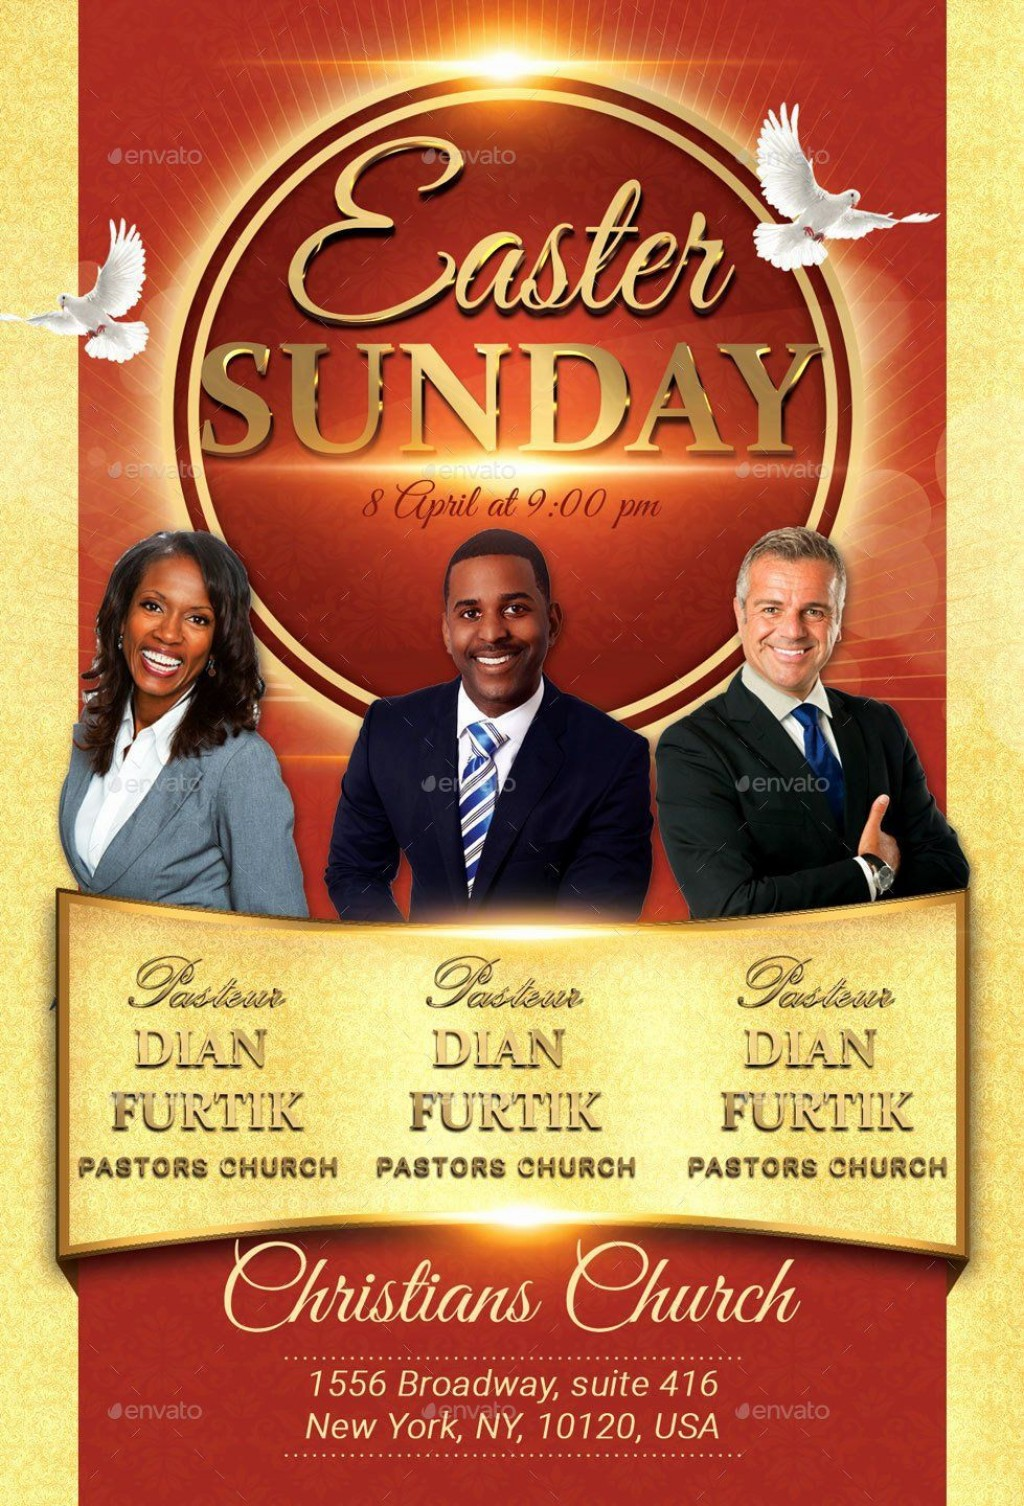 004 Striking Church Flyer Template Free Concept  Easter Anniversary Conference PsdLarge